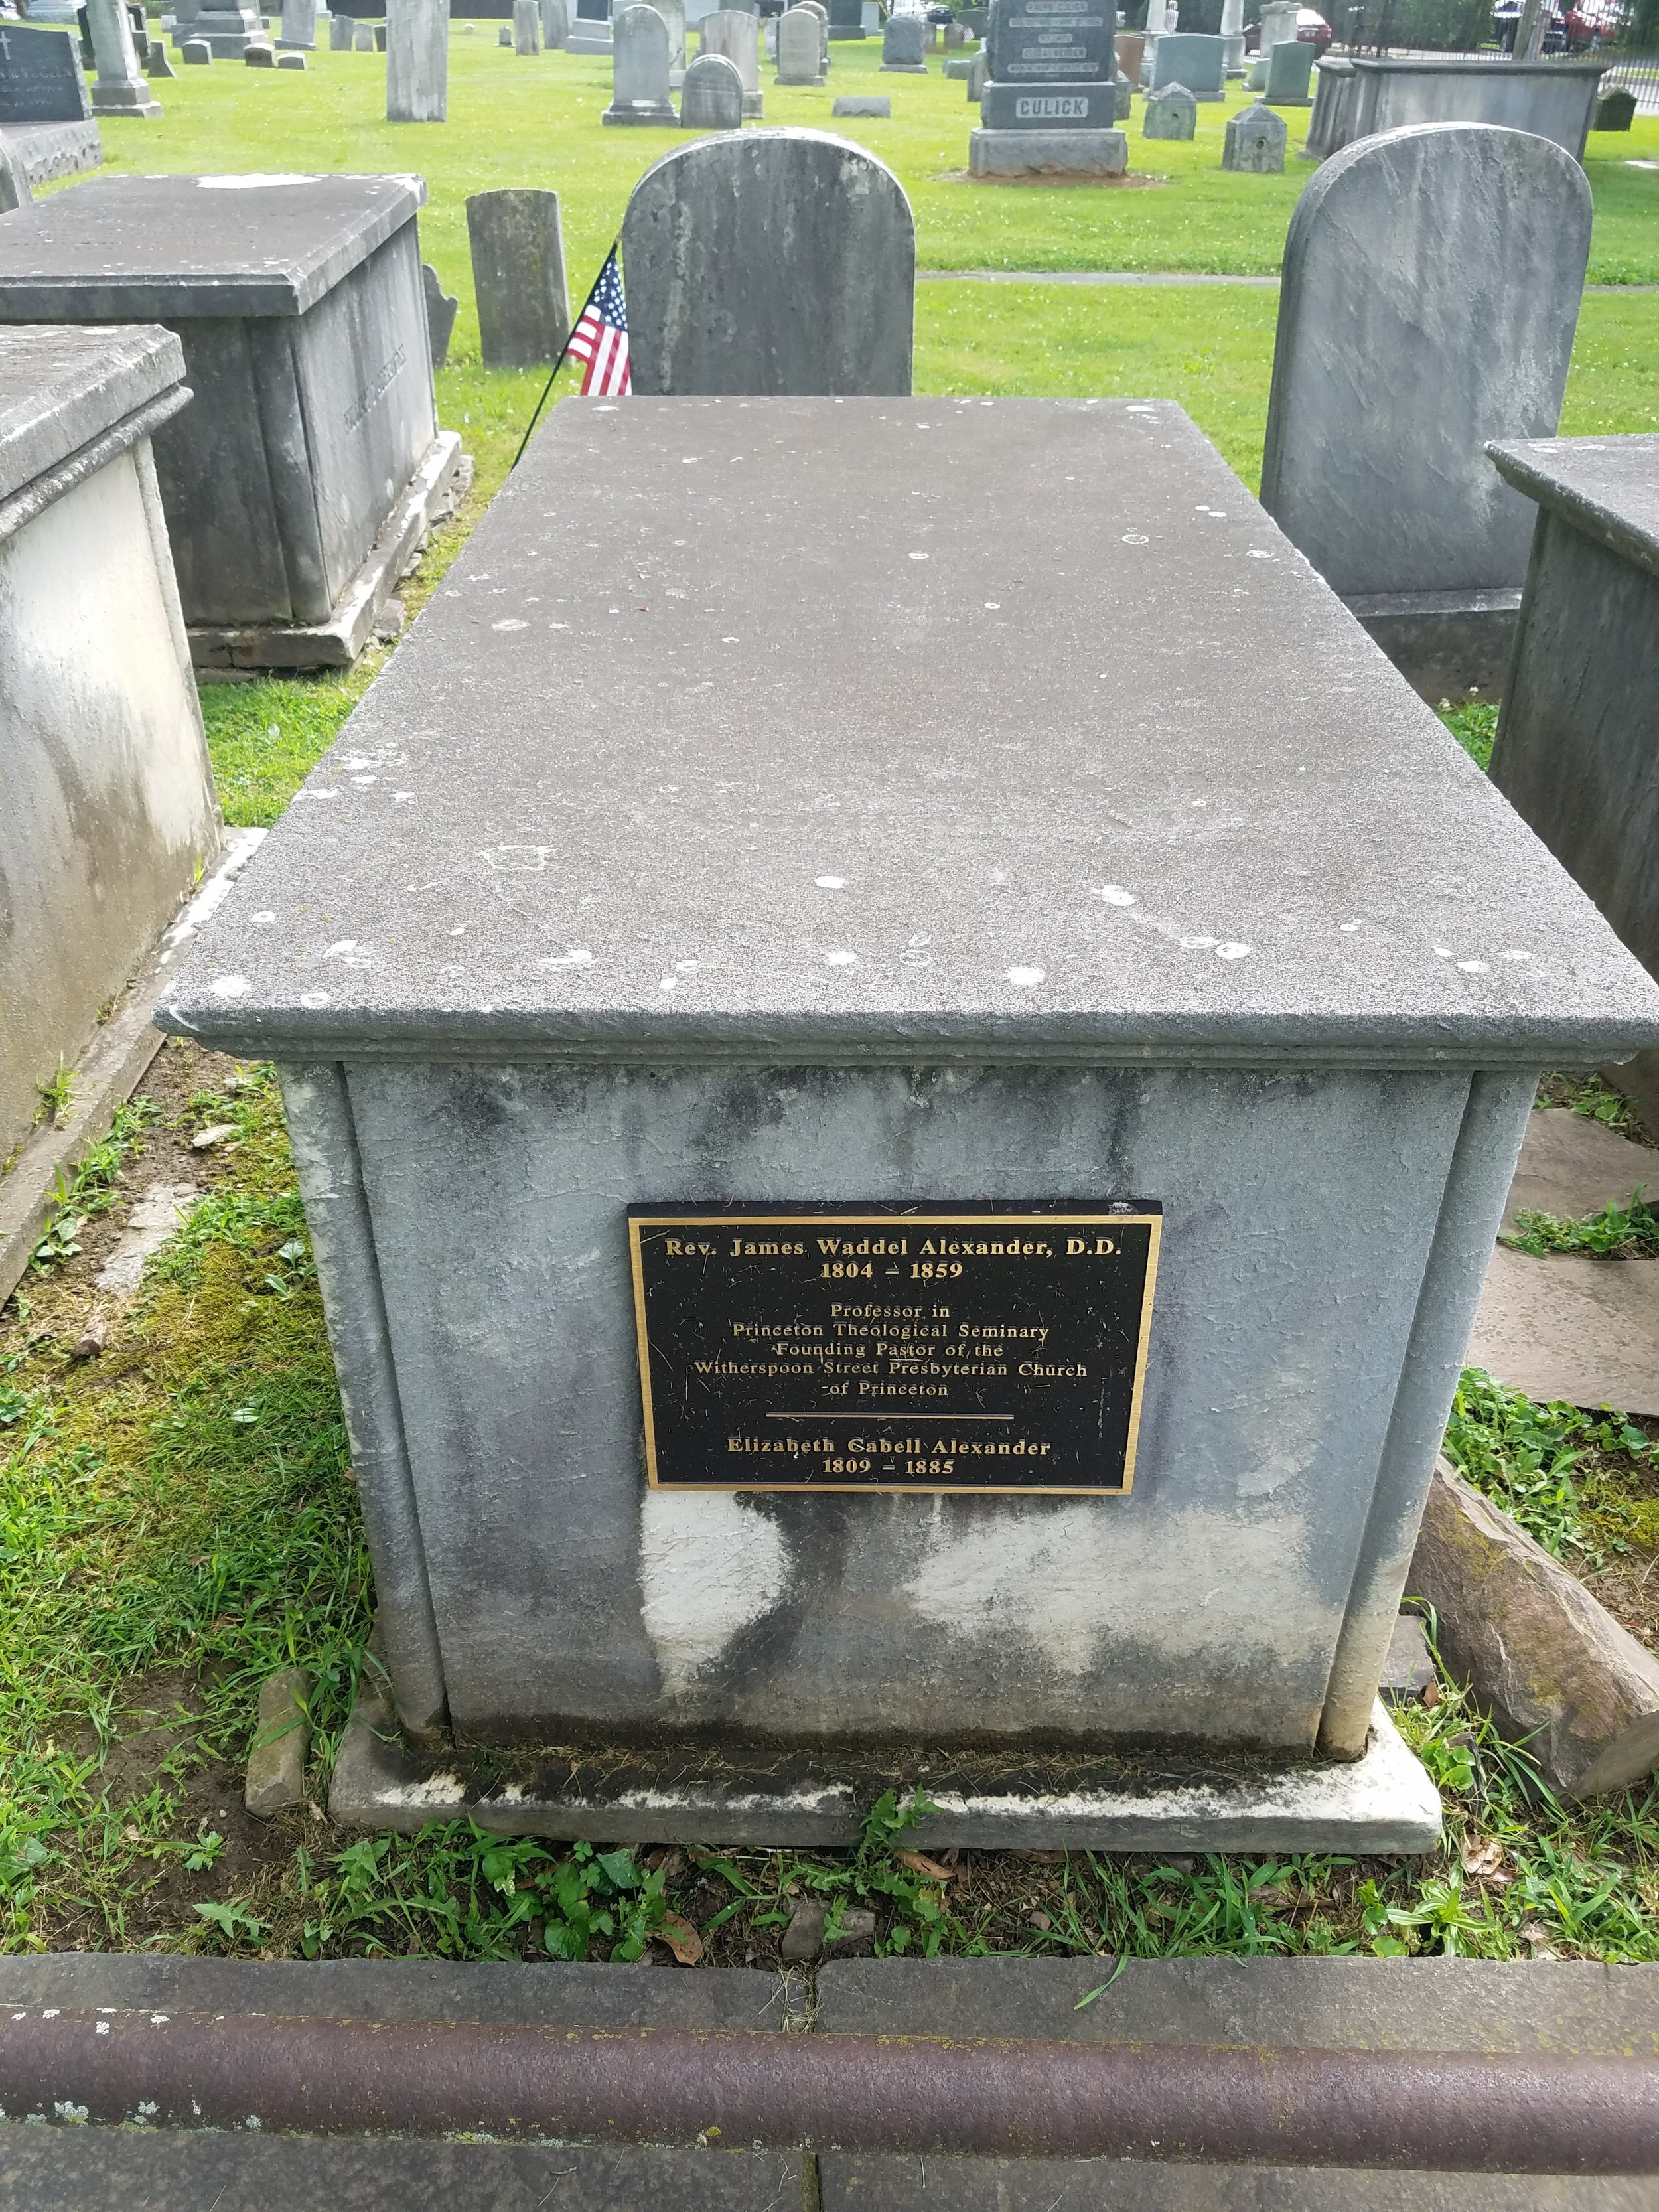 James Waddel Alexander is buried at Princeton Cemetery, Princeton, New Jersey (photo credit: R. Andrew Myers).